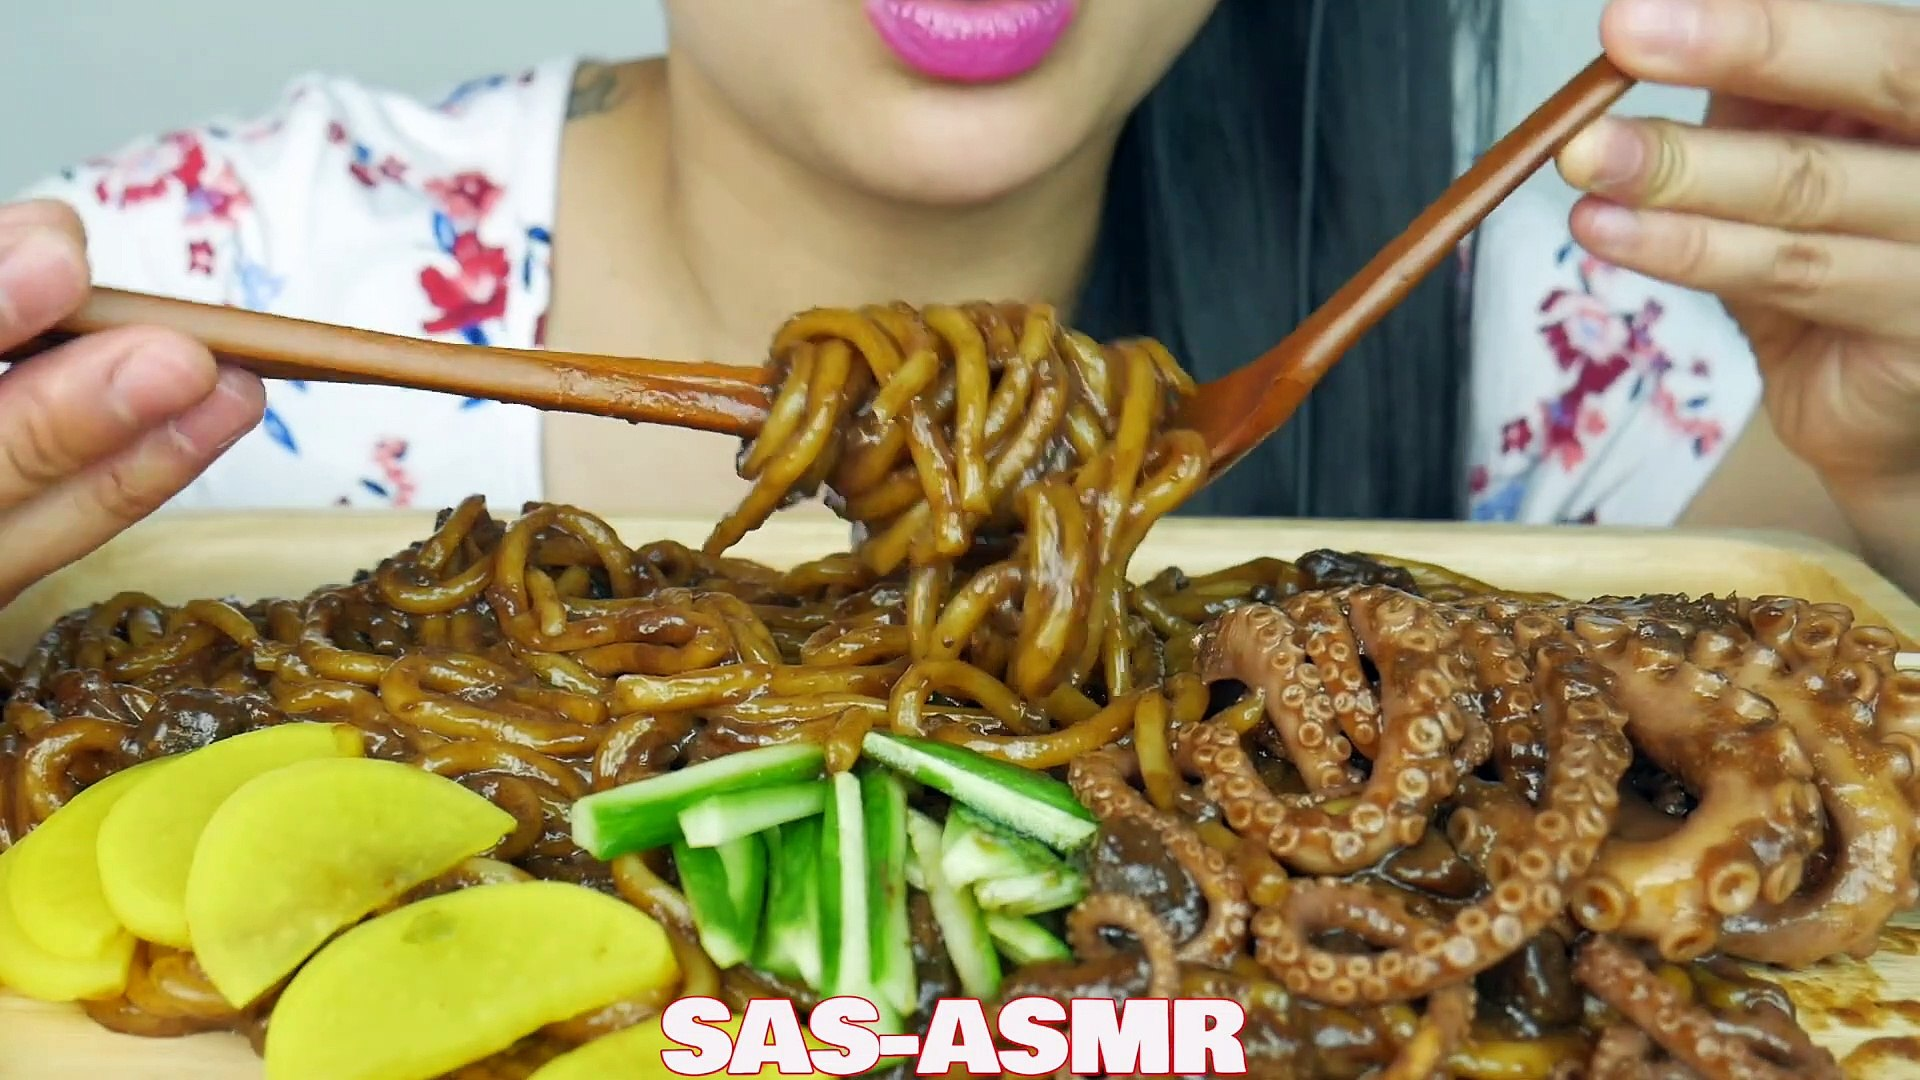 Asmr Blackbean Noodles Octopus Eating Sounds No Talking Sas Asmr Video Dailymotion After watching both my sister. asmr blackbean noodles octopus eating sounds no talking sas asmr